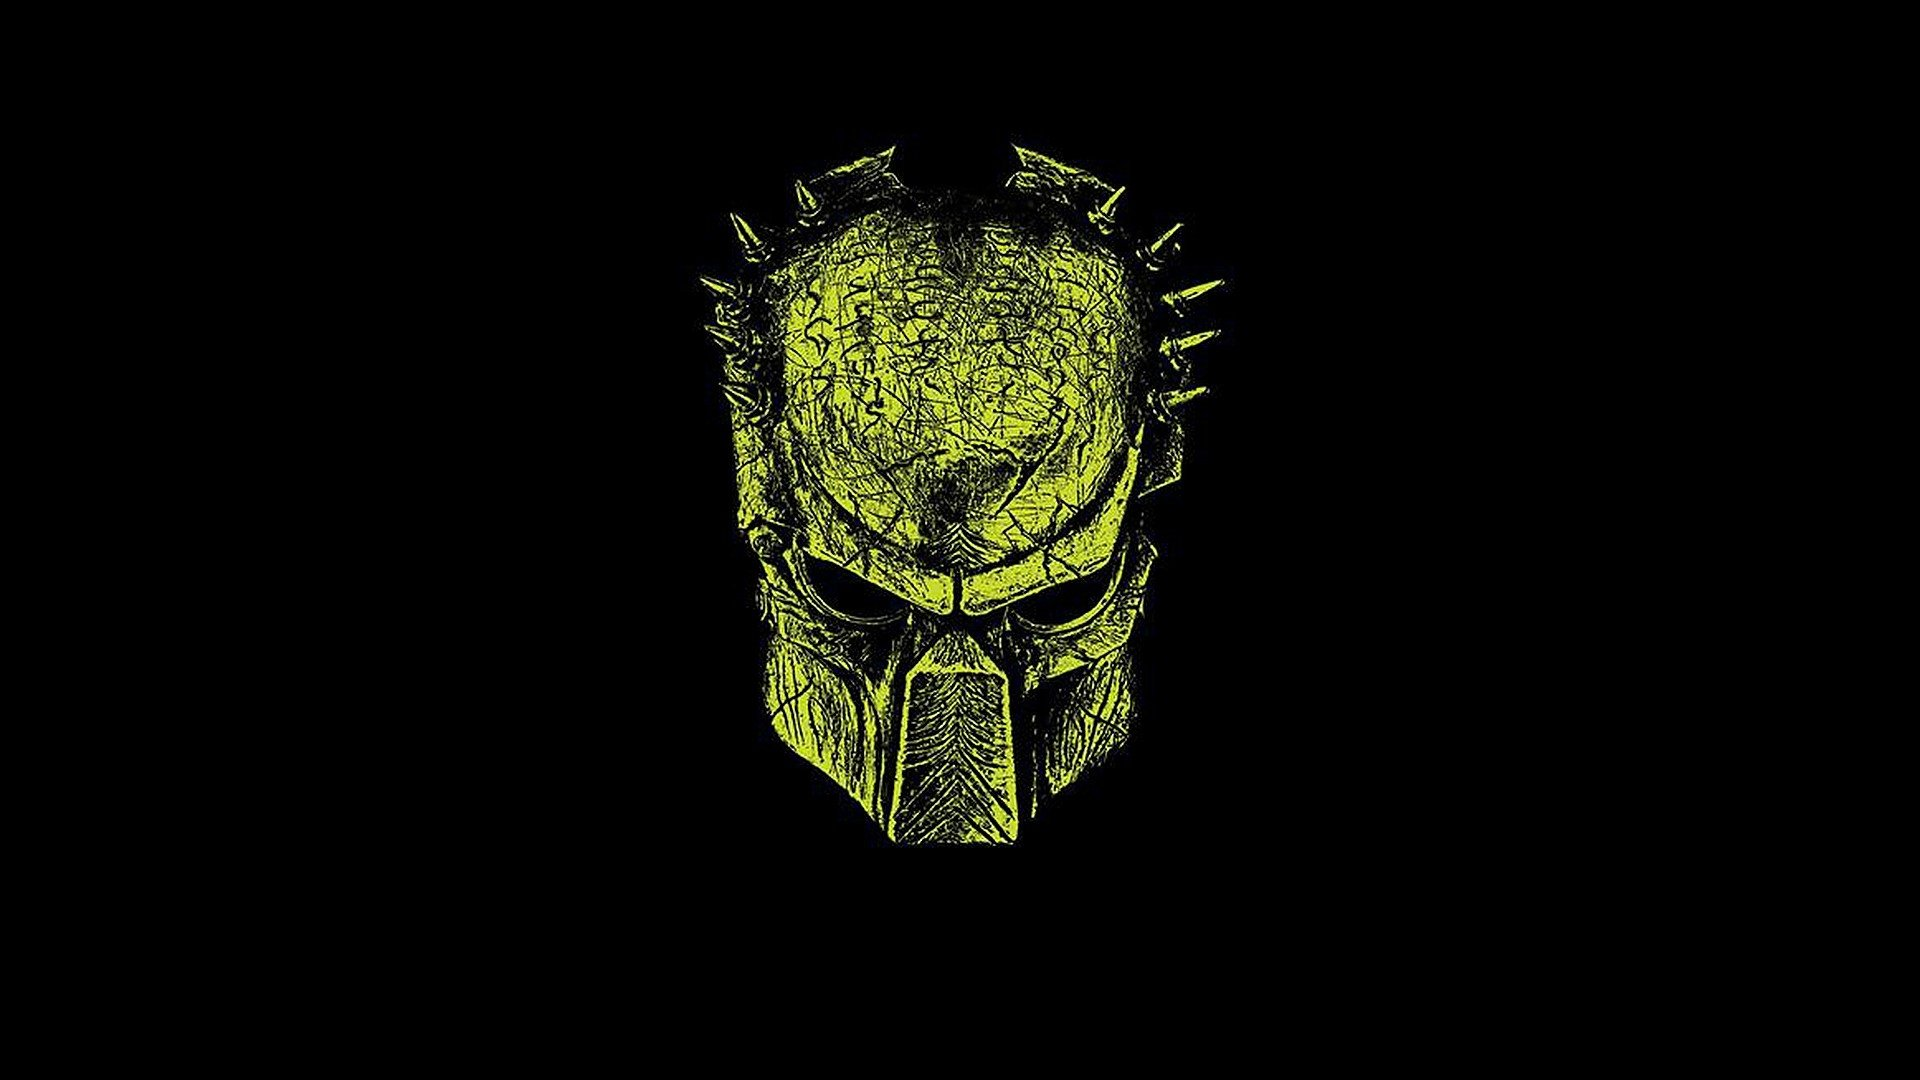 Sci Fi Iphone Wallpaper Predator Full Hd Wallpaper And Background Image